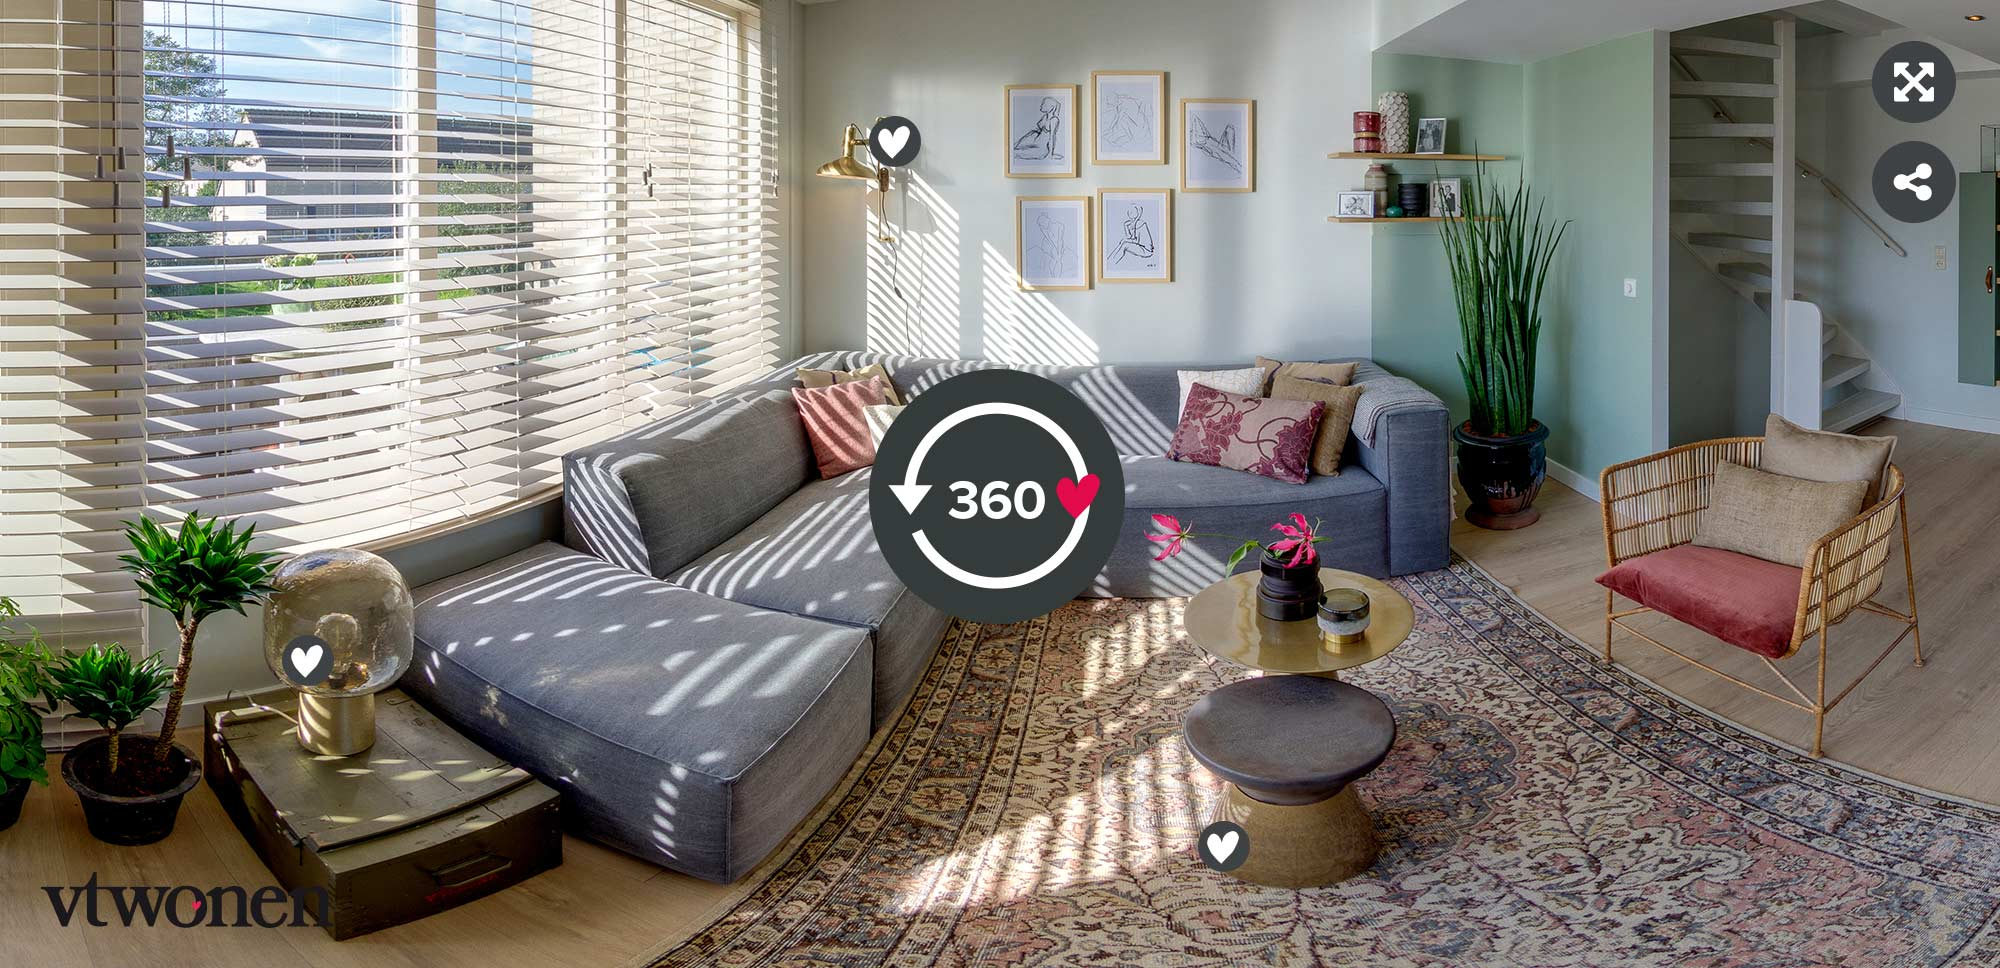 360 tour vtwonen make-over in Velserbroek aflevering 11 seizoen 9